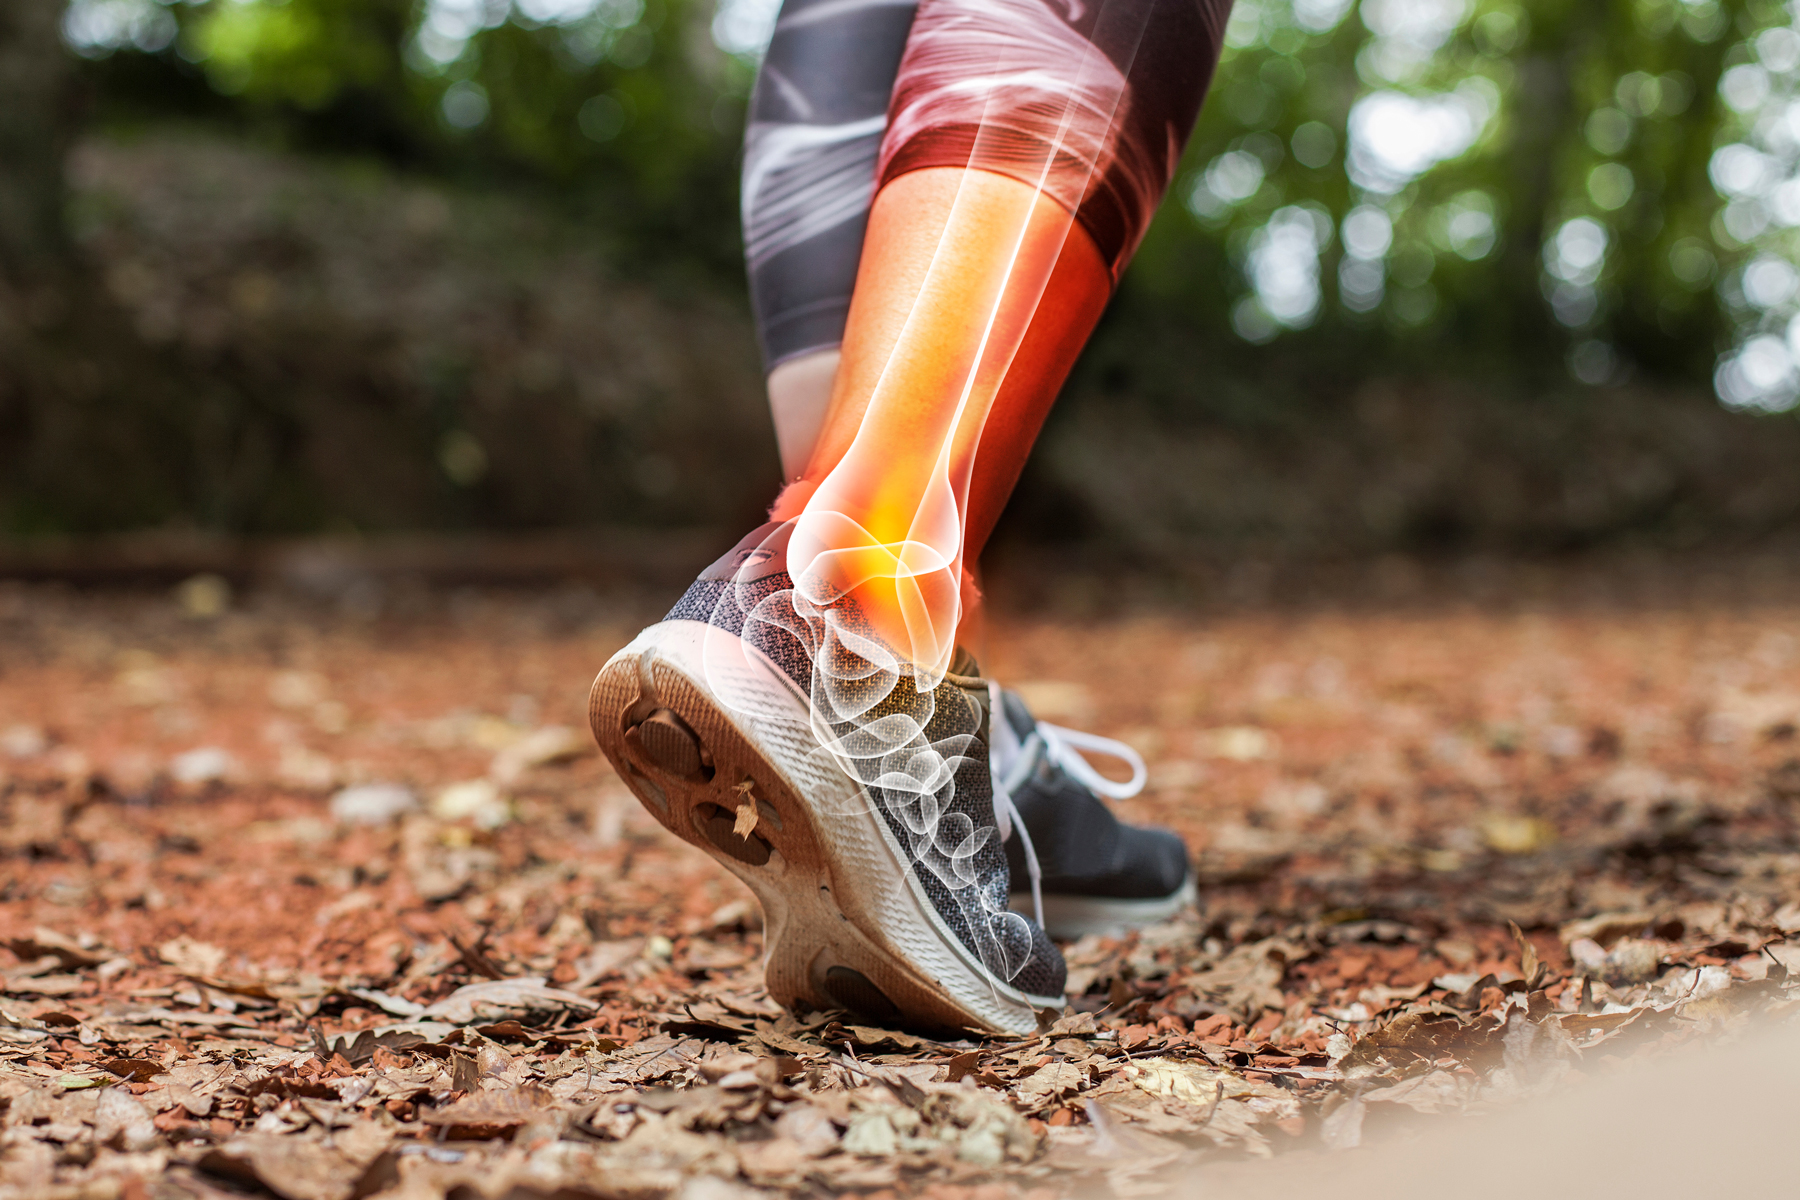 Outpatient Orthopedic Services in Cedar Rapids, Iowa